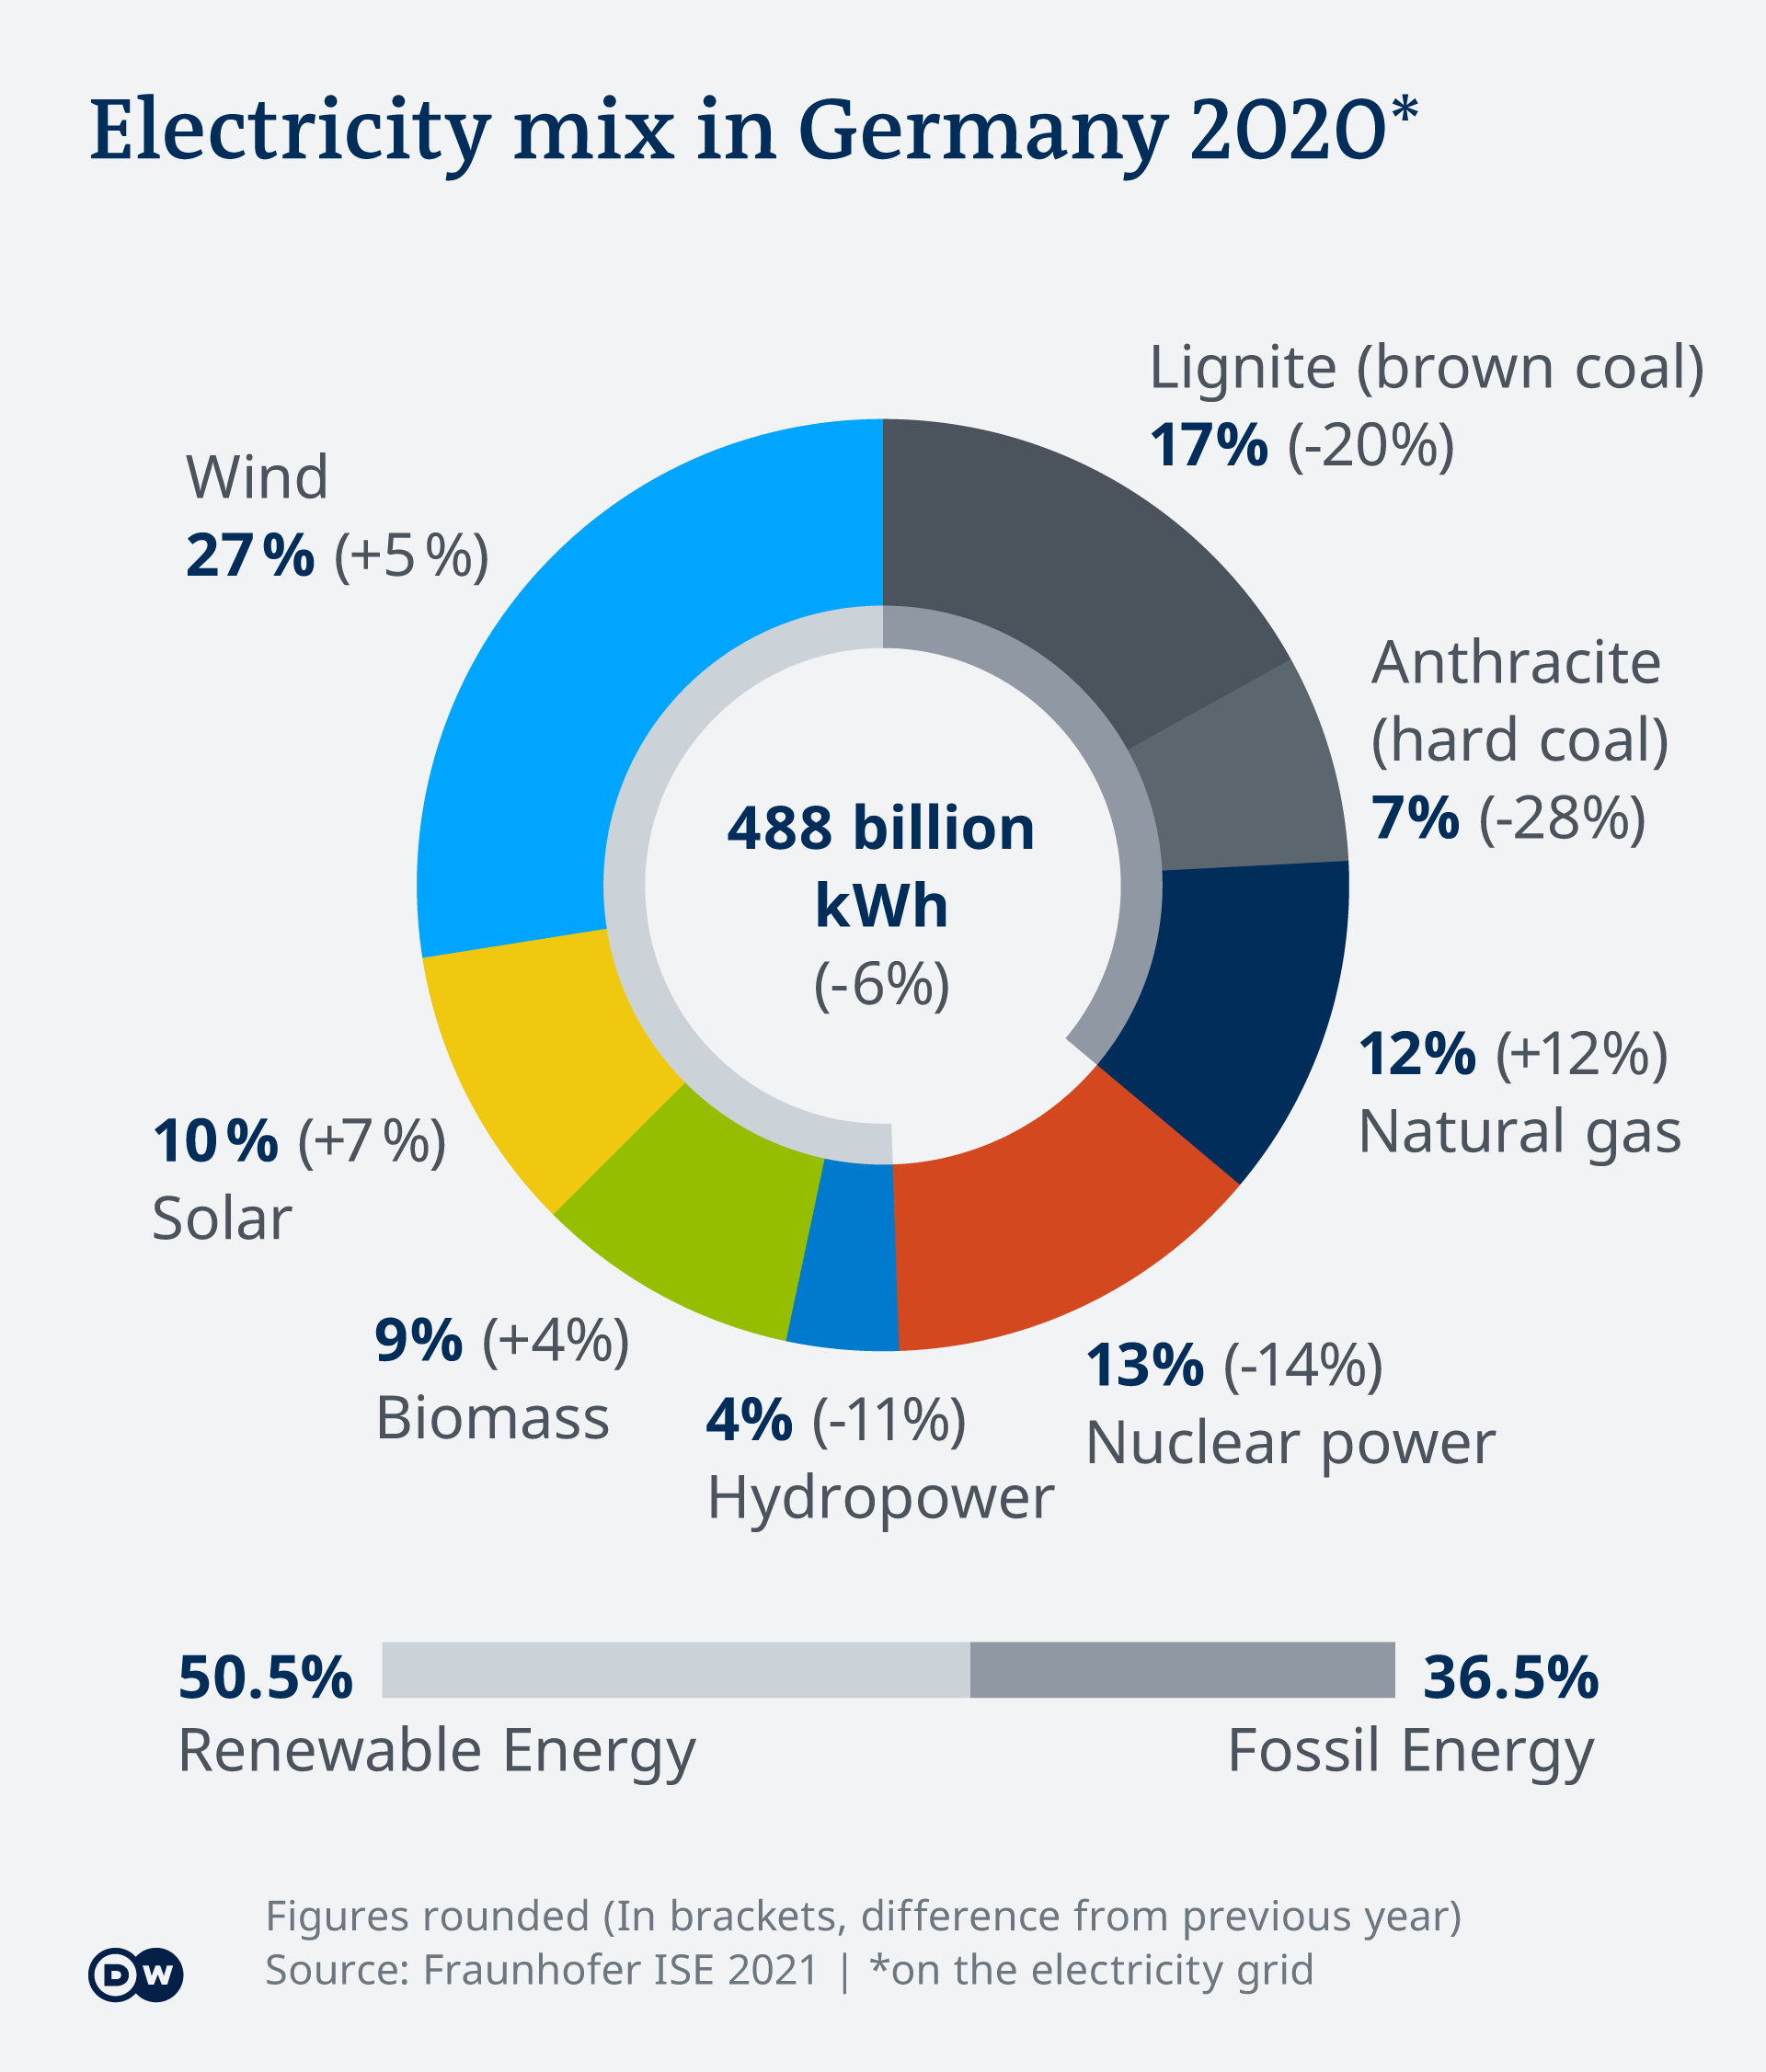 Electricity mix in Germany 2020 shown in an infographic